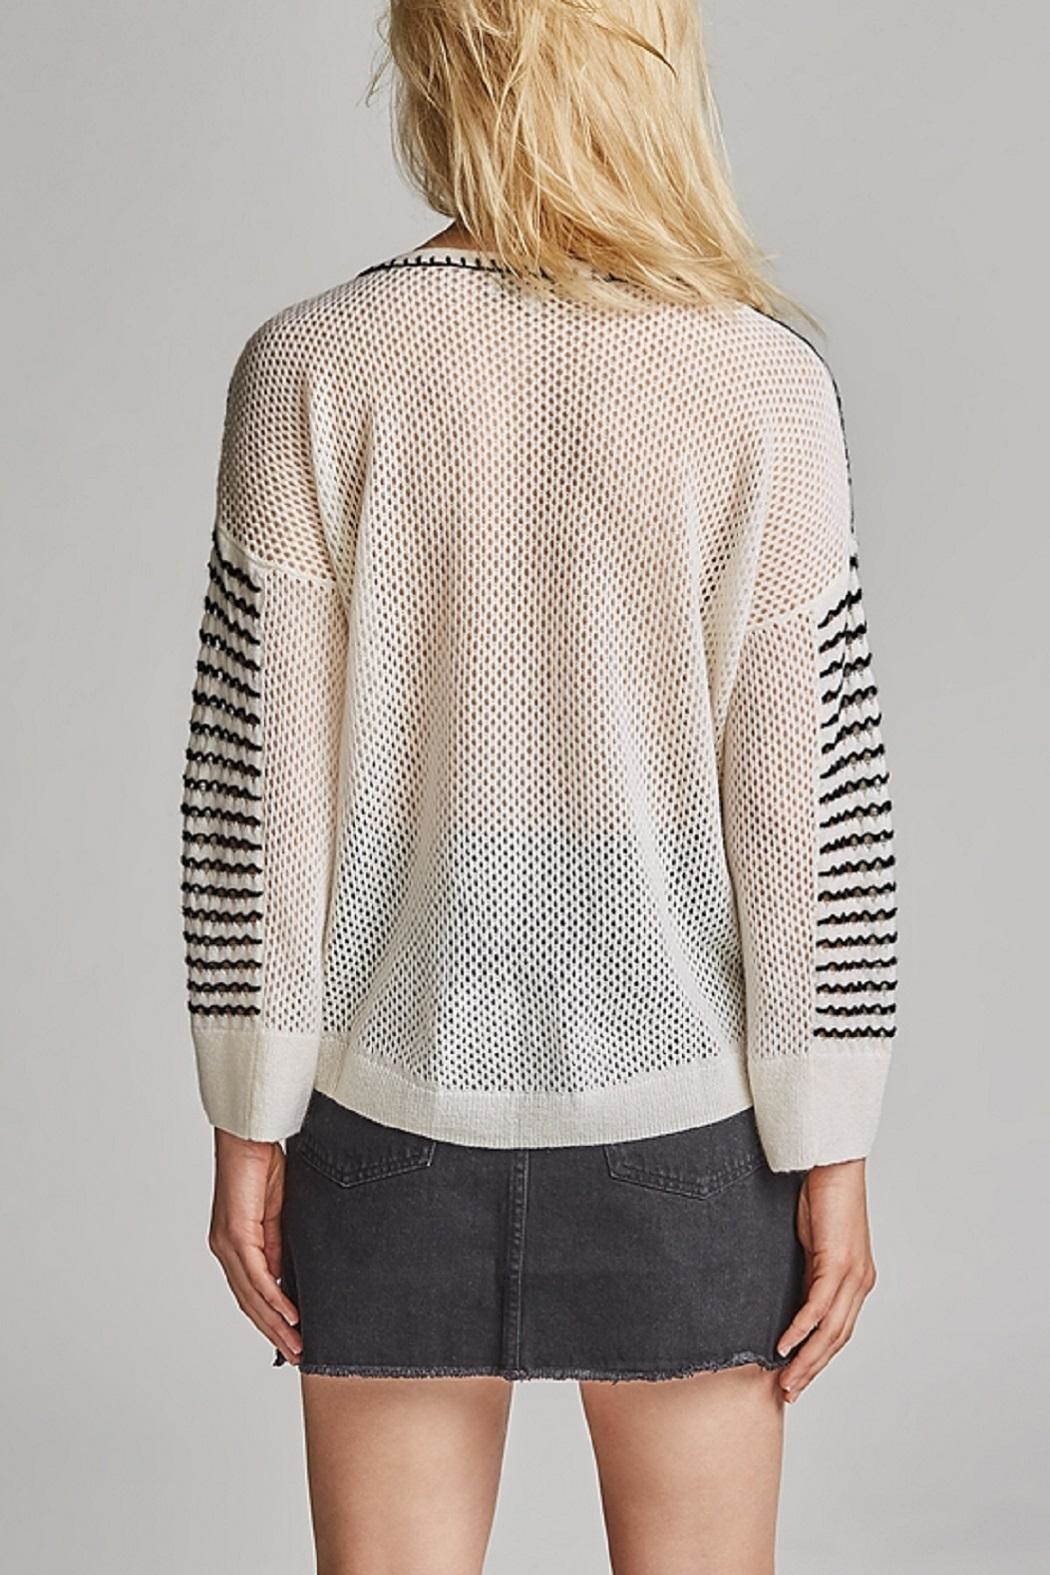 White + Warren Cashmere Crew Neck Sweater - Front Full Image